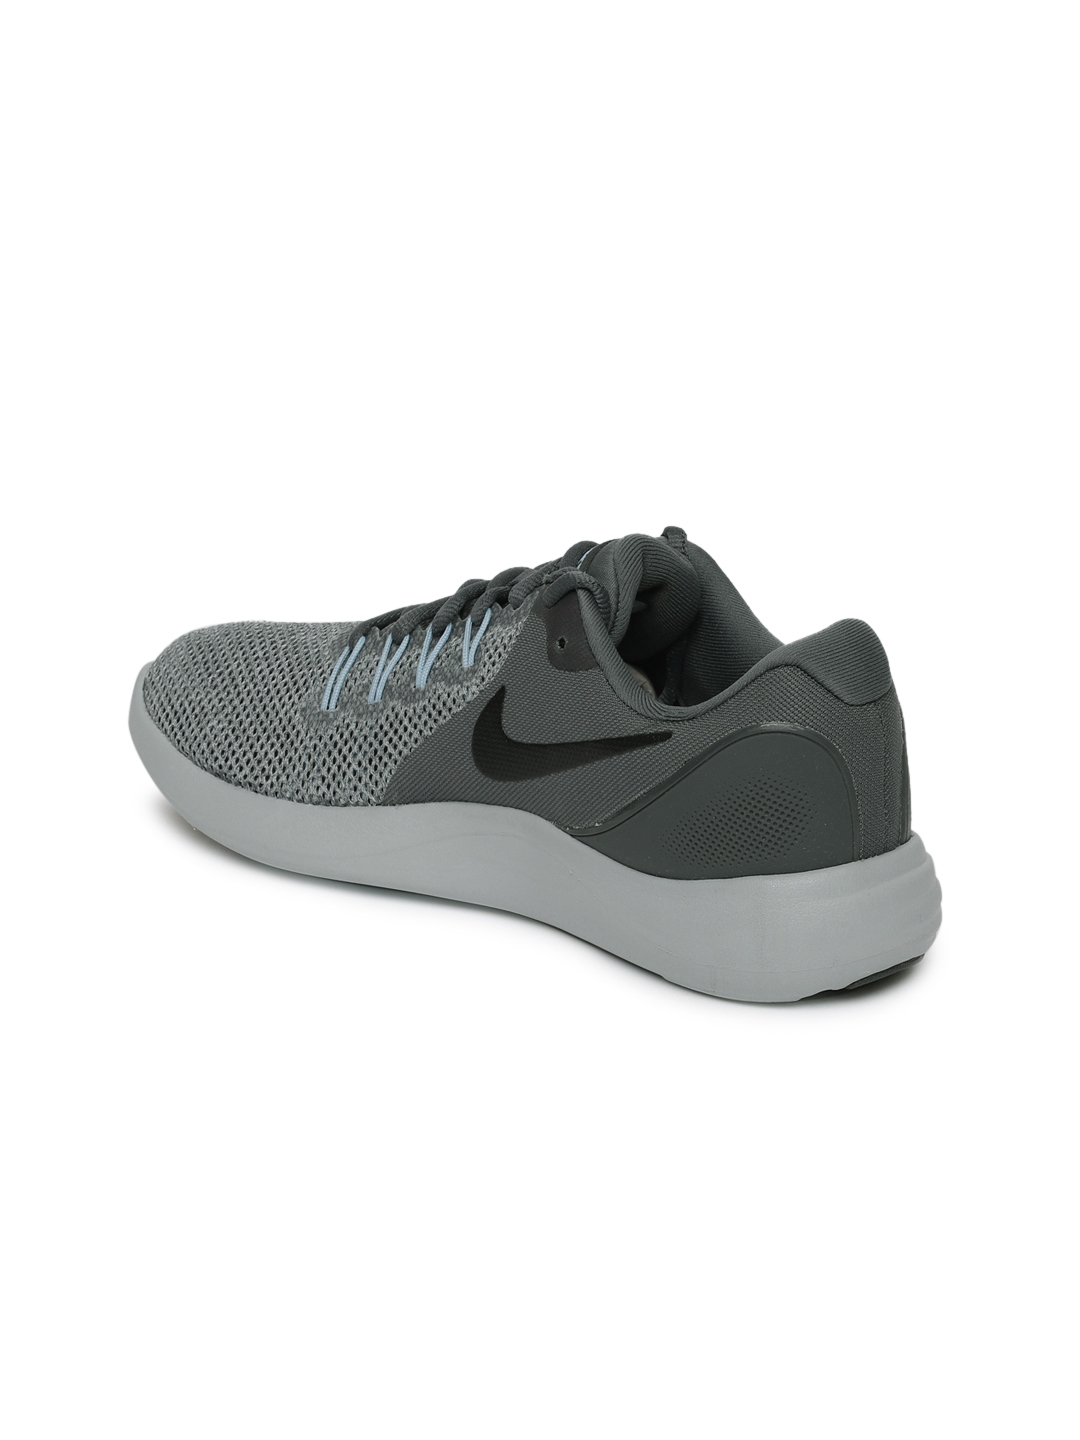 dbf84a7f Buy Nike Women Grey Lunar Apparent Running Shoes - Sports Shoes for ...